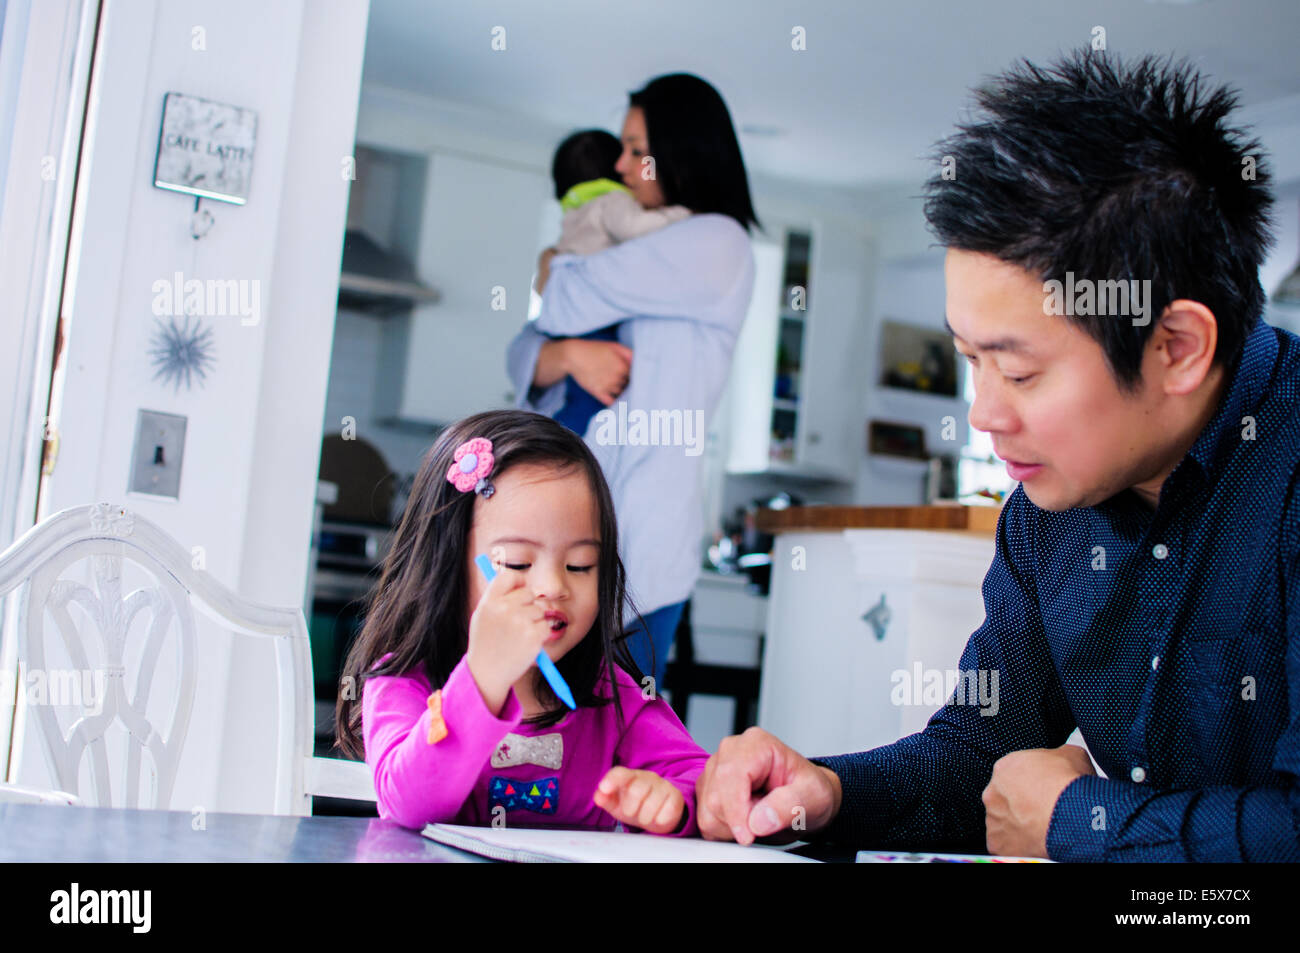 Mid adult father teaching toddler daughter in kitchen - Stock Image